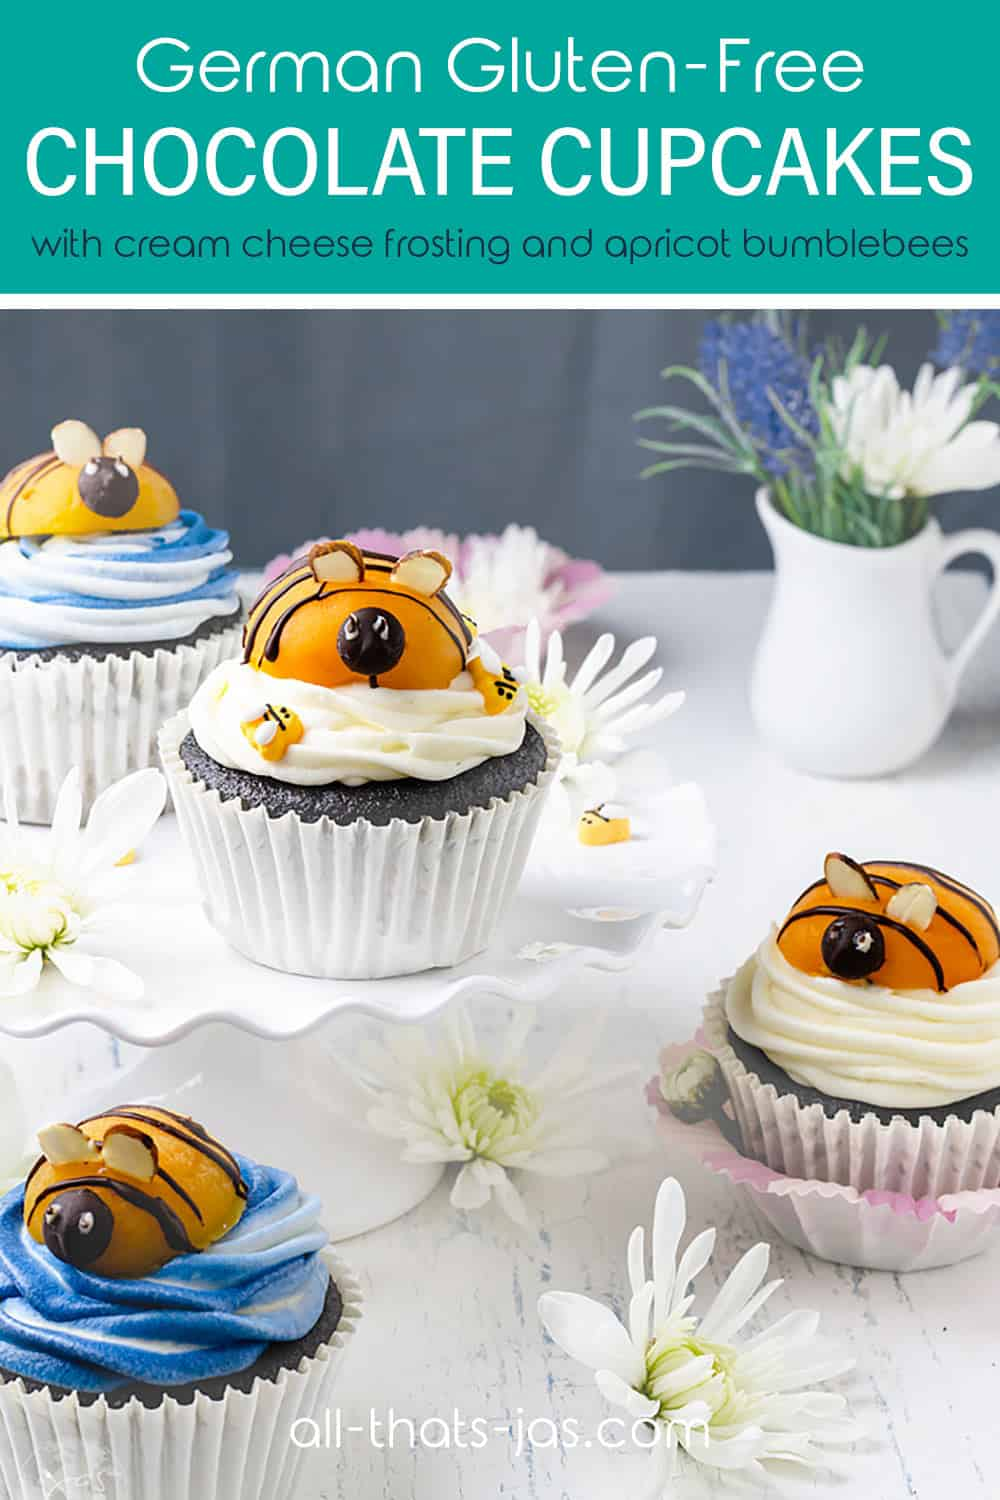 Chocolate cupcakes with bumblebee toppers sitting on a table with text overlay.